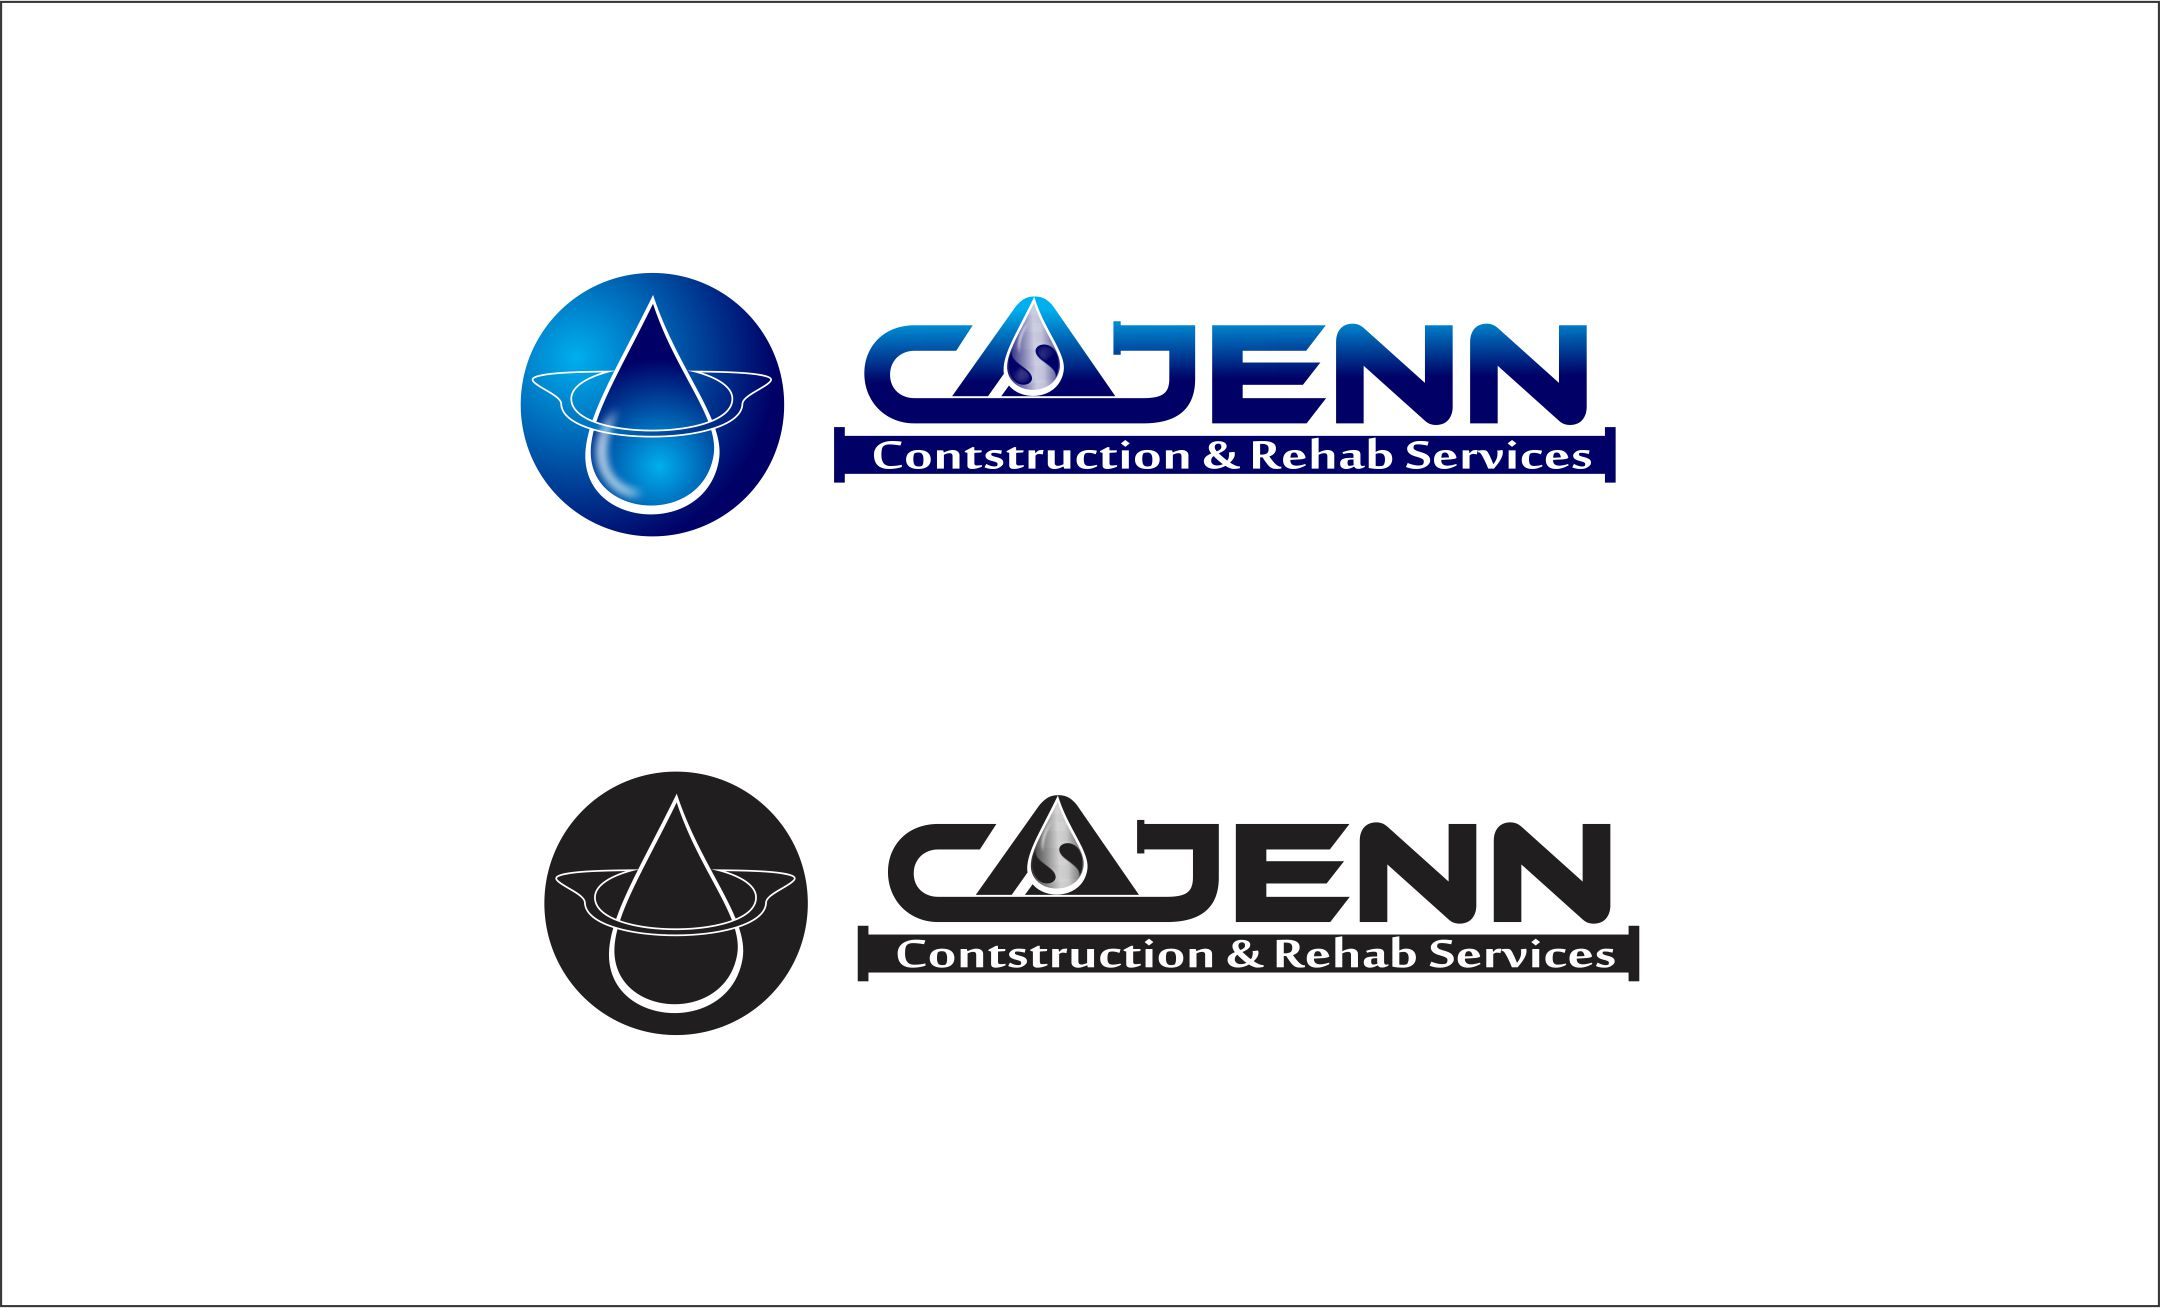 Logo Design by Agus Martoyo - Entry No. 210 in the Logo Design Contest New Logo Design for CaJenn Construction & Rehab Services.